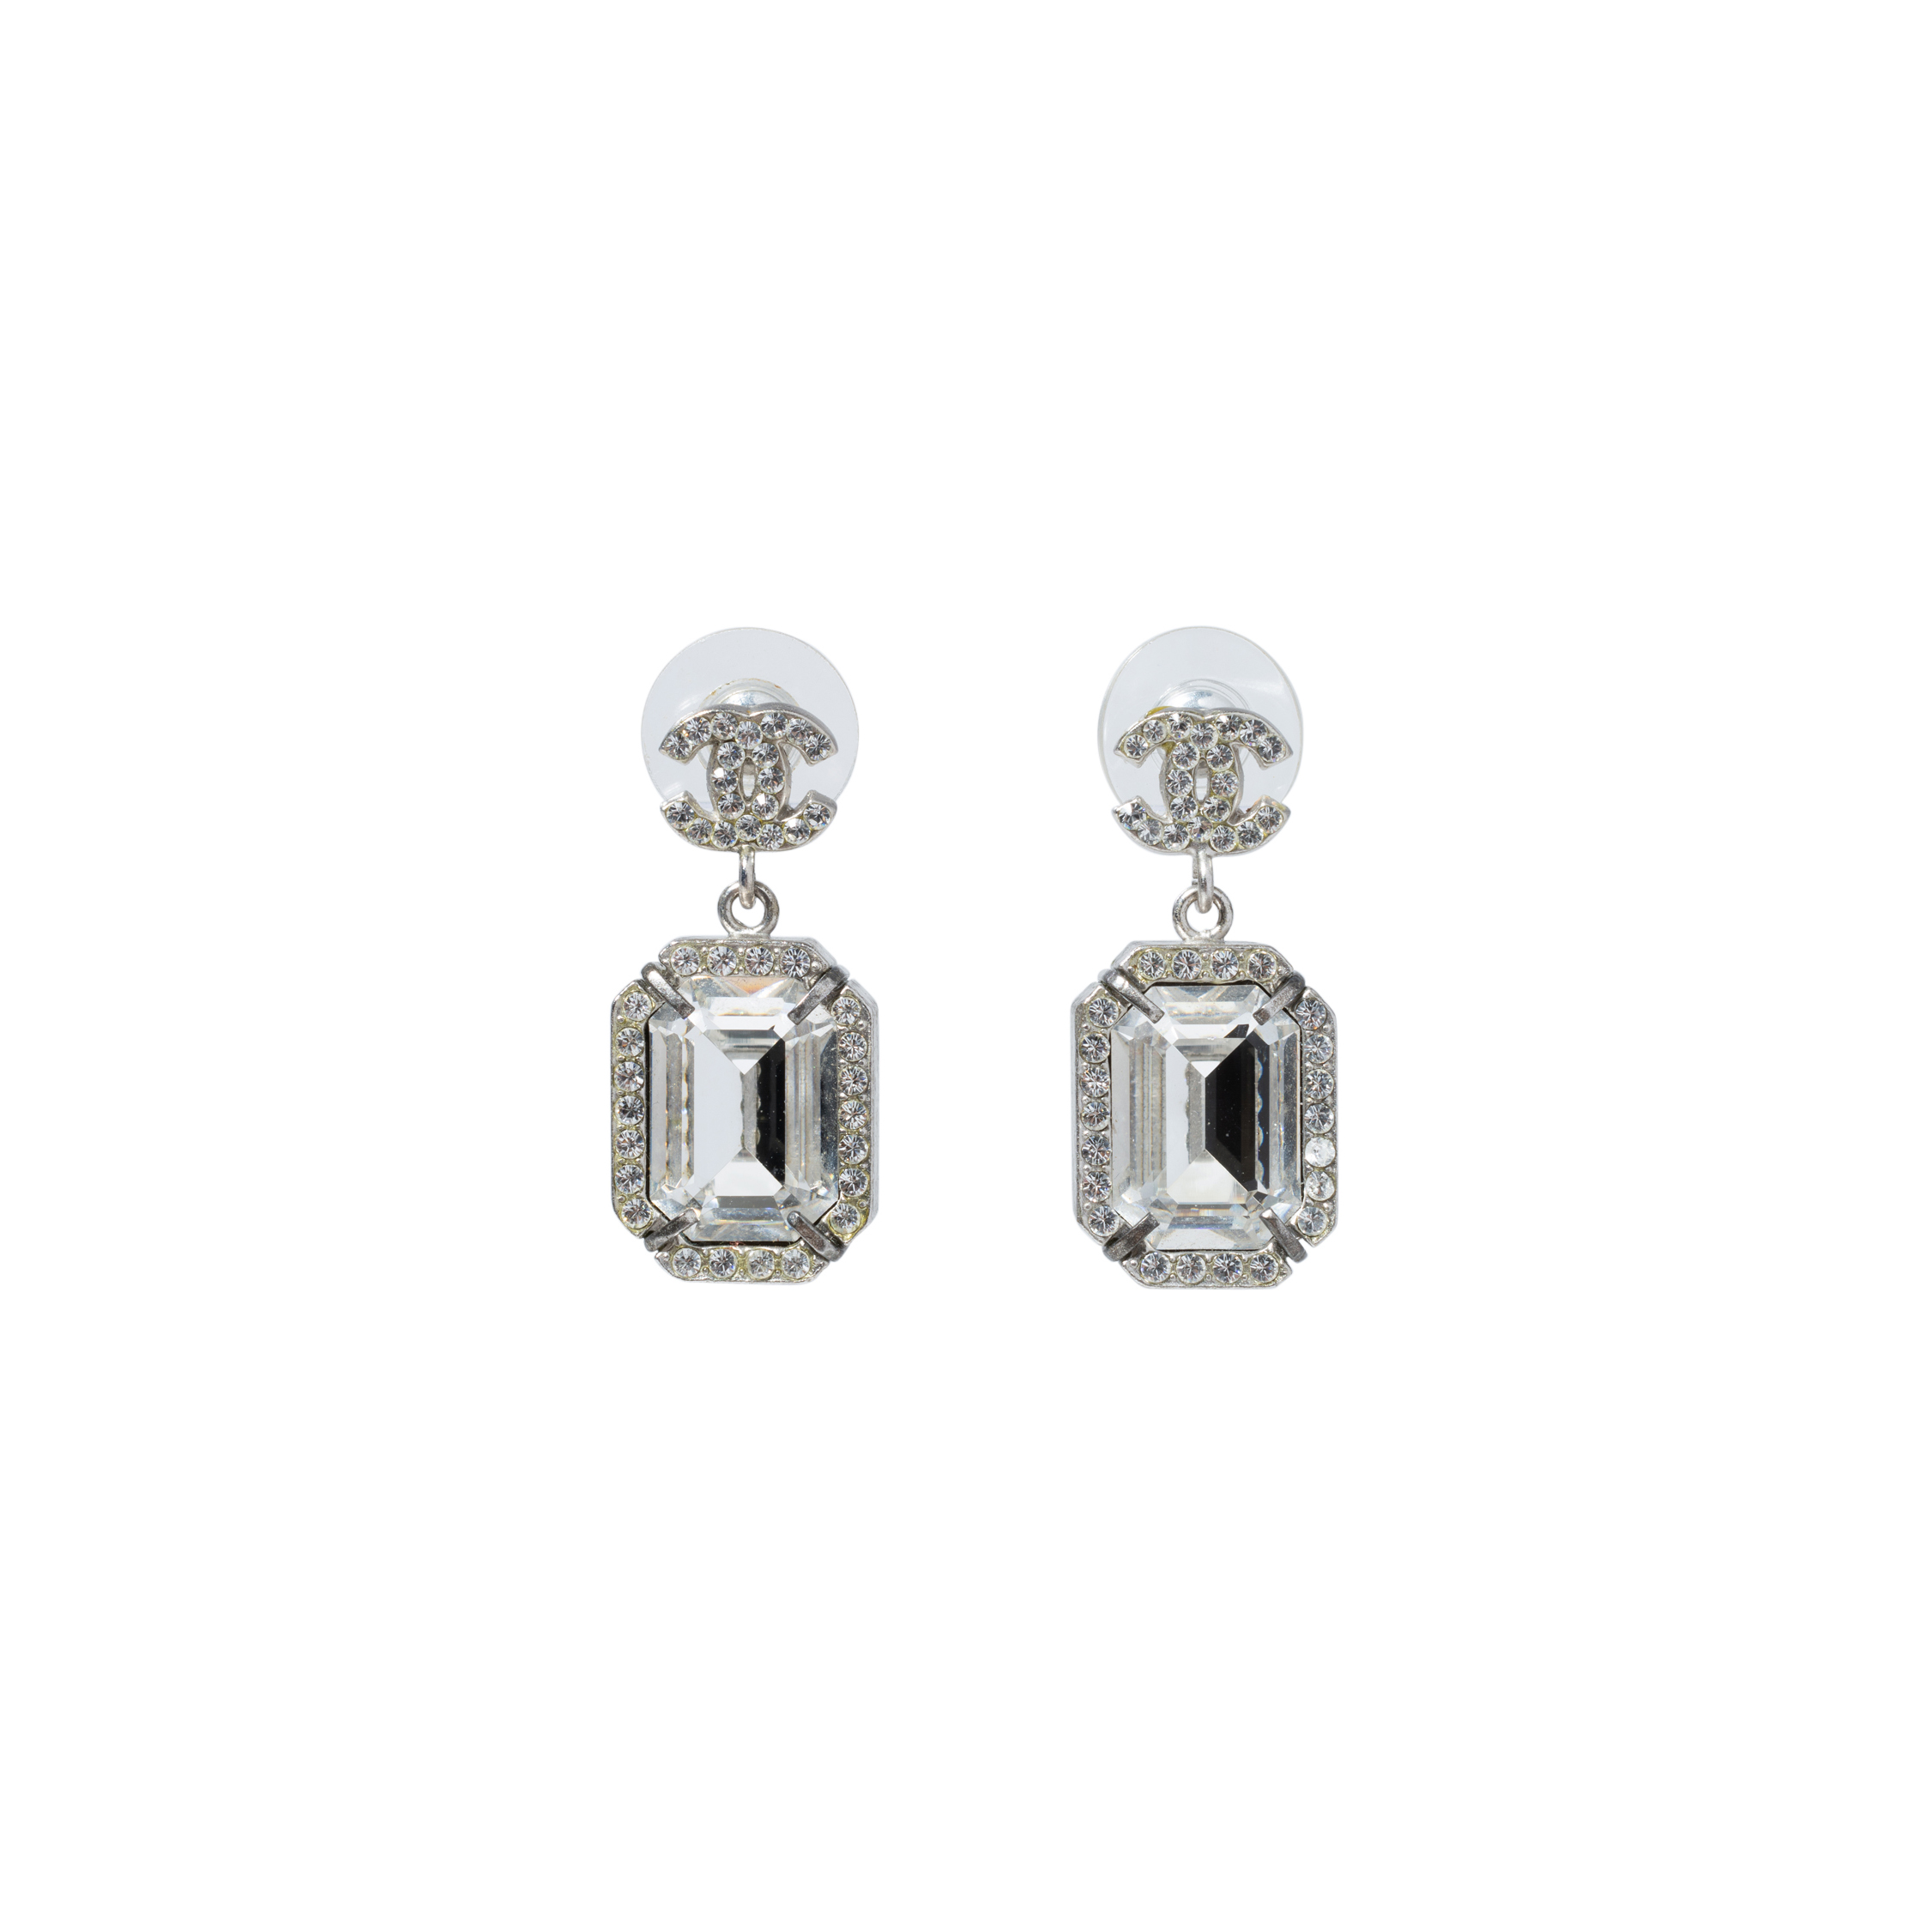 Authentic Pre Owned Chanel Large Crystal Drop Earrings Pss 515 00105 The Fifth Collection